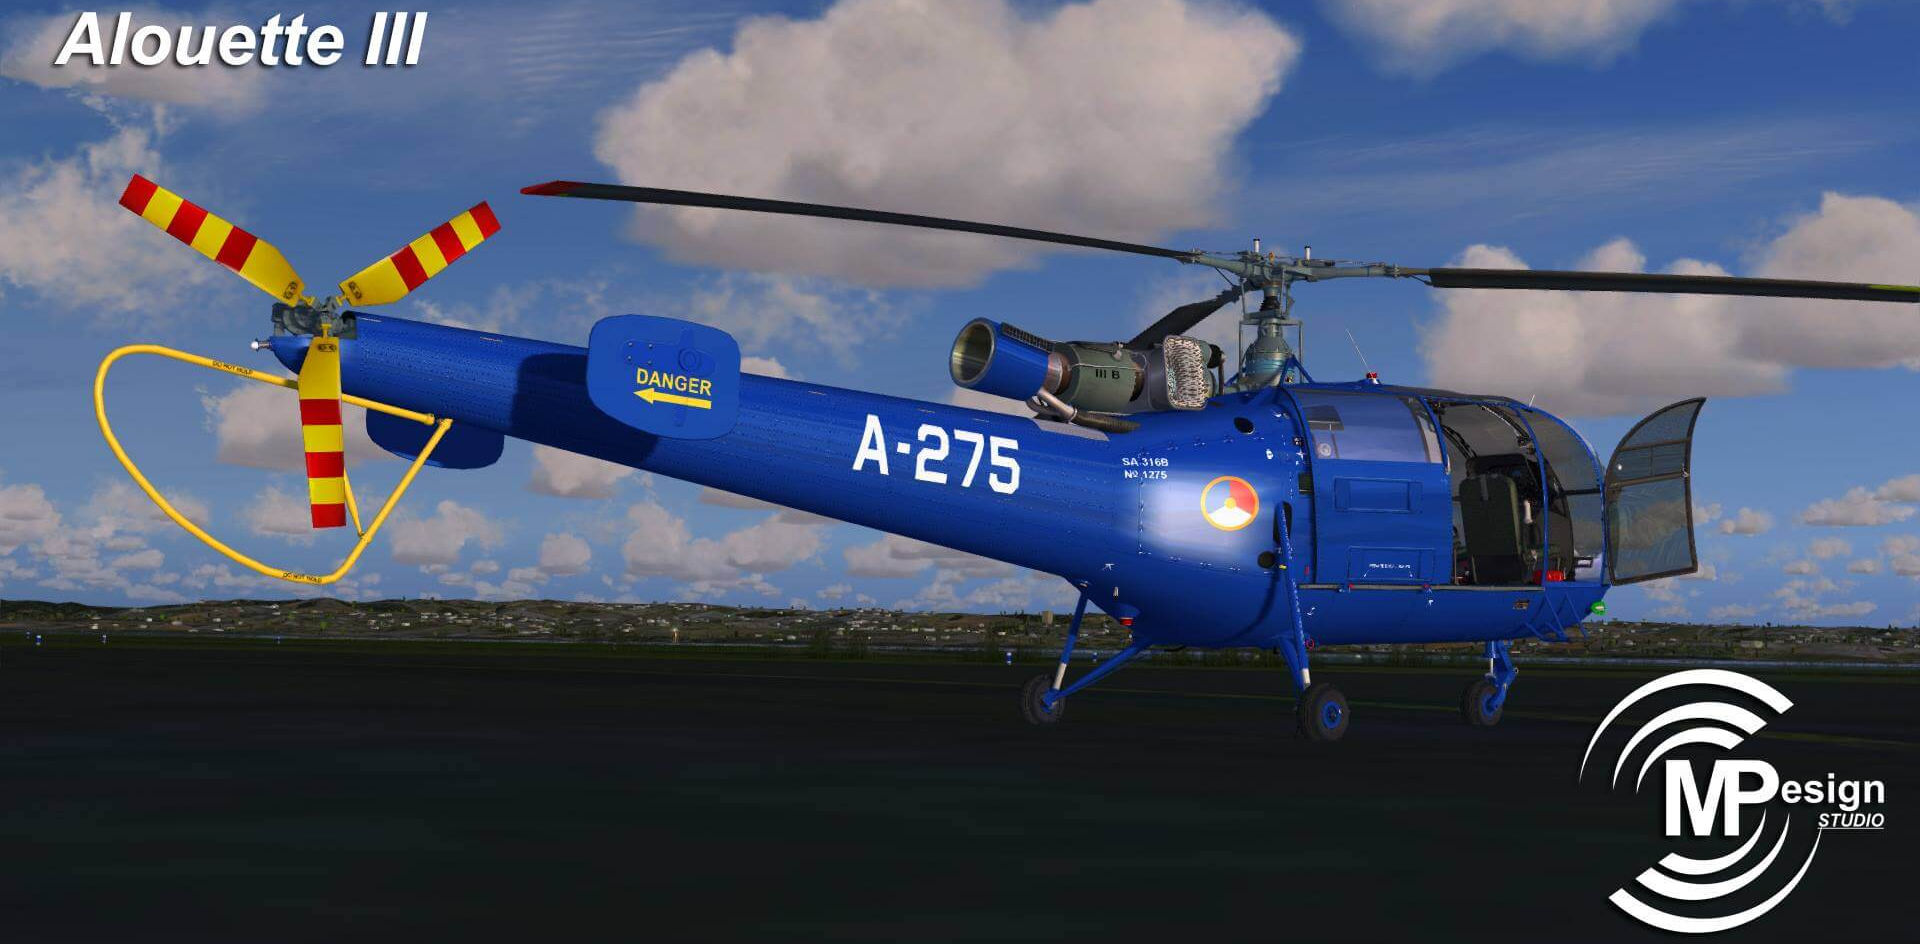 Alouette III MP Design Studio Preview